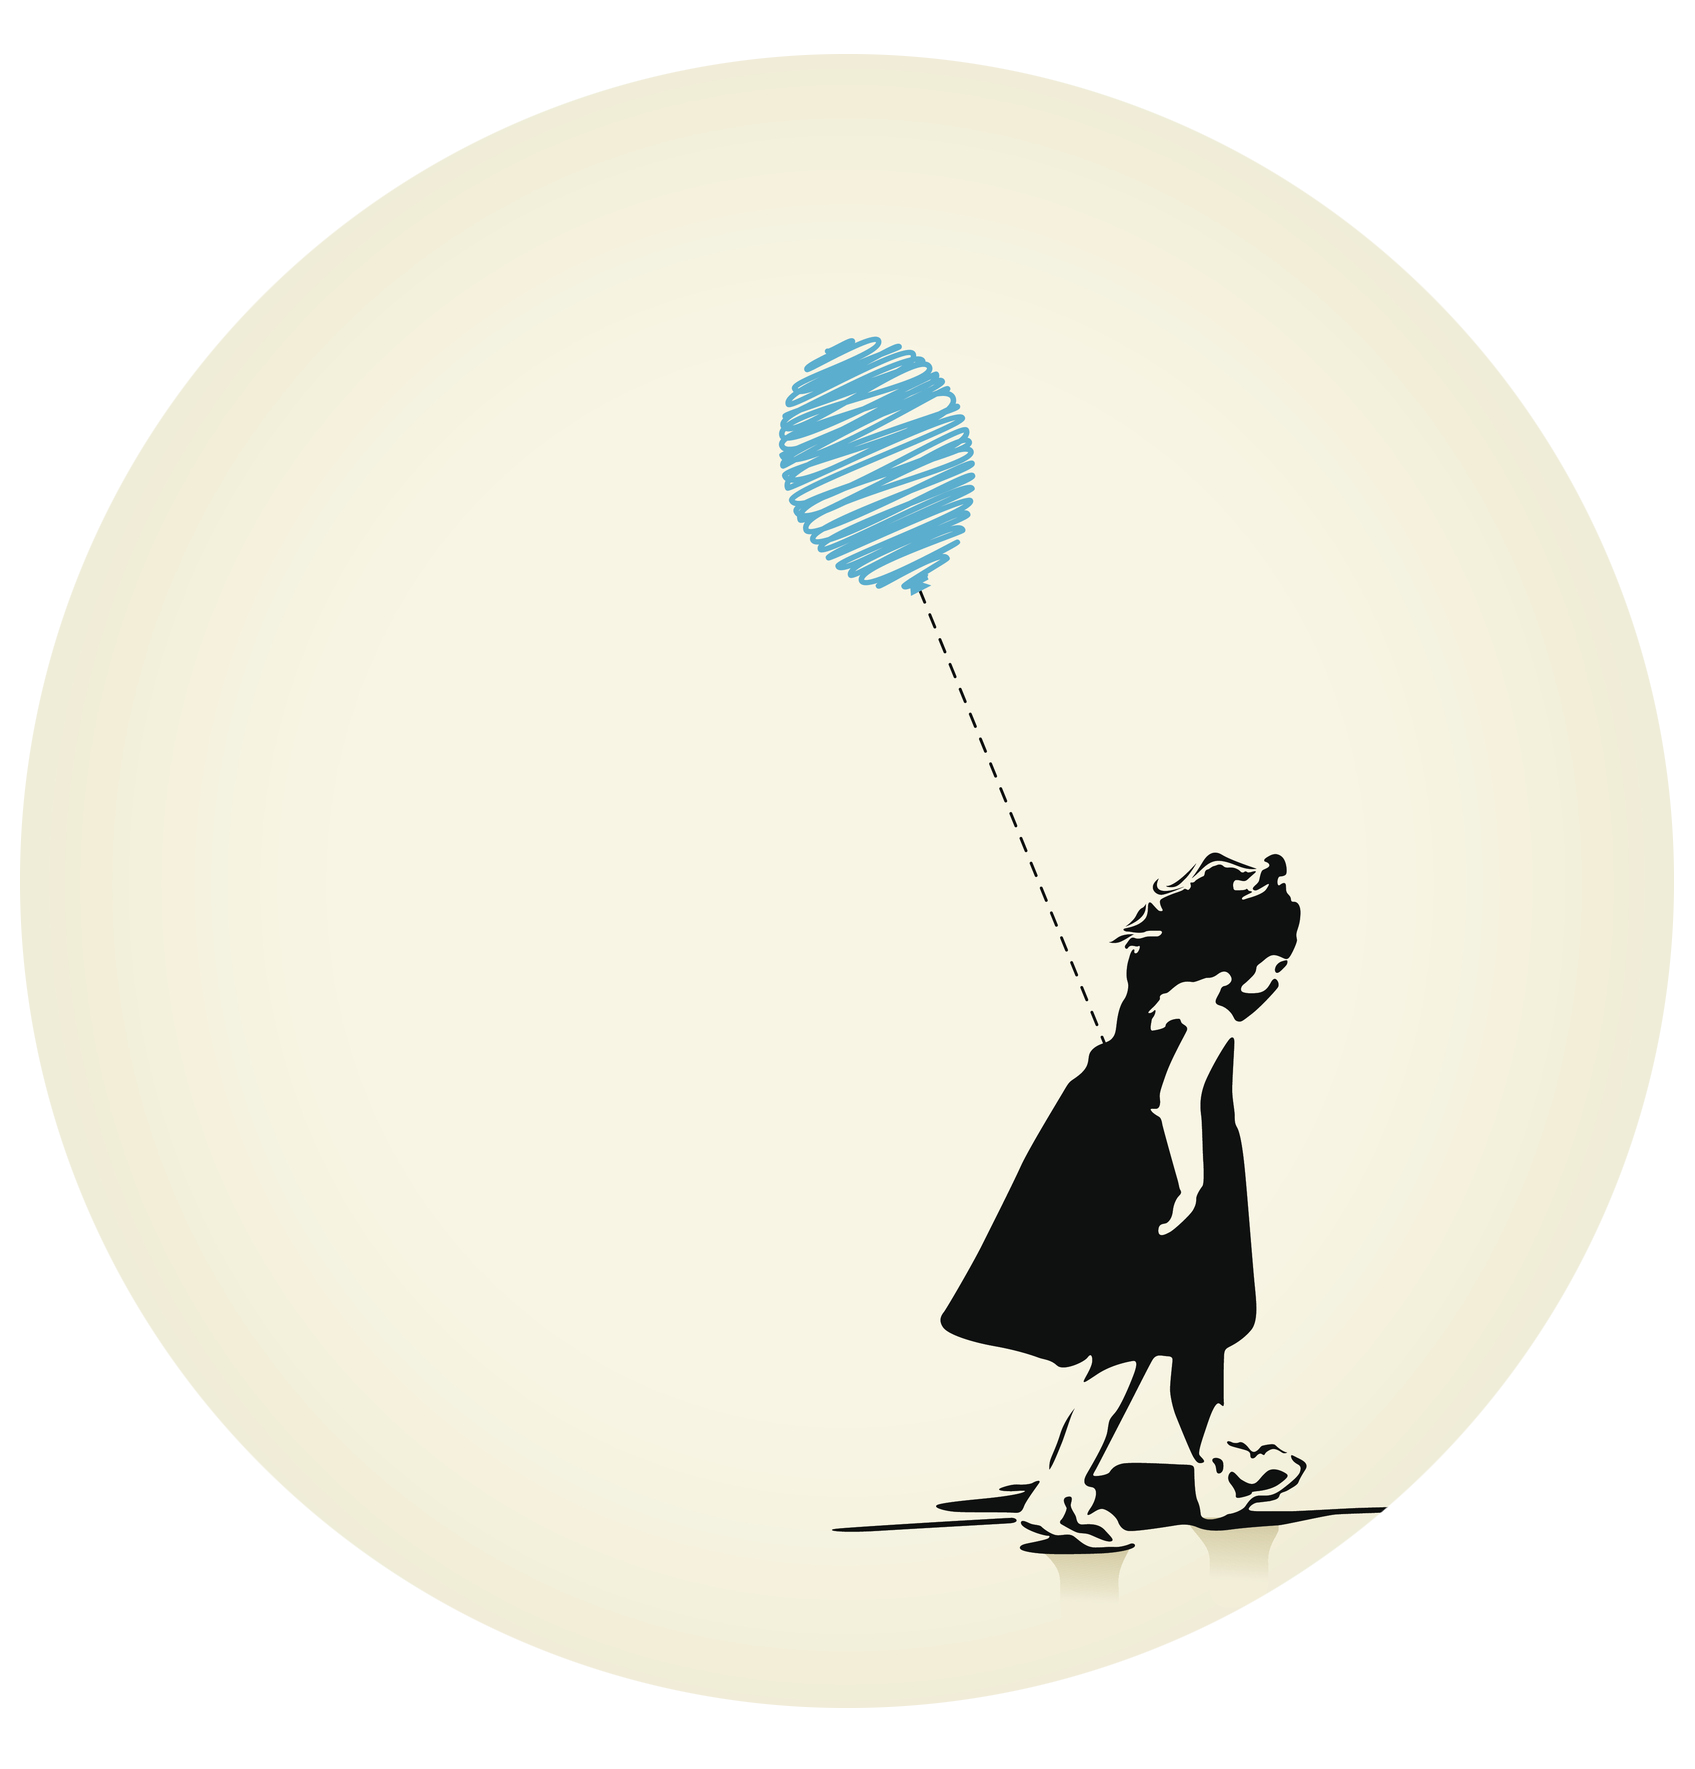 Girl carrying a balloon